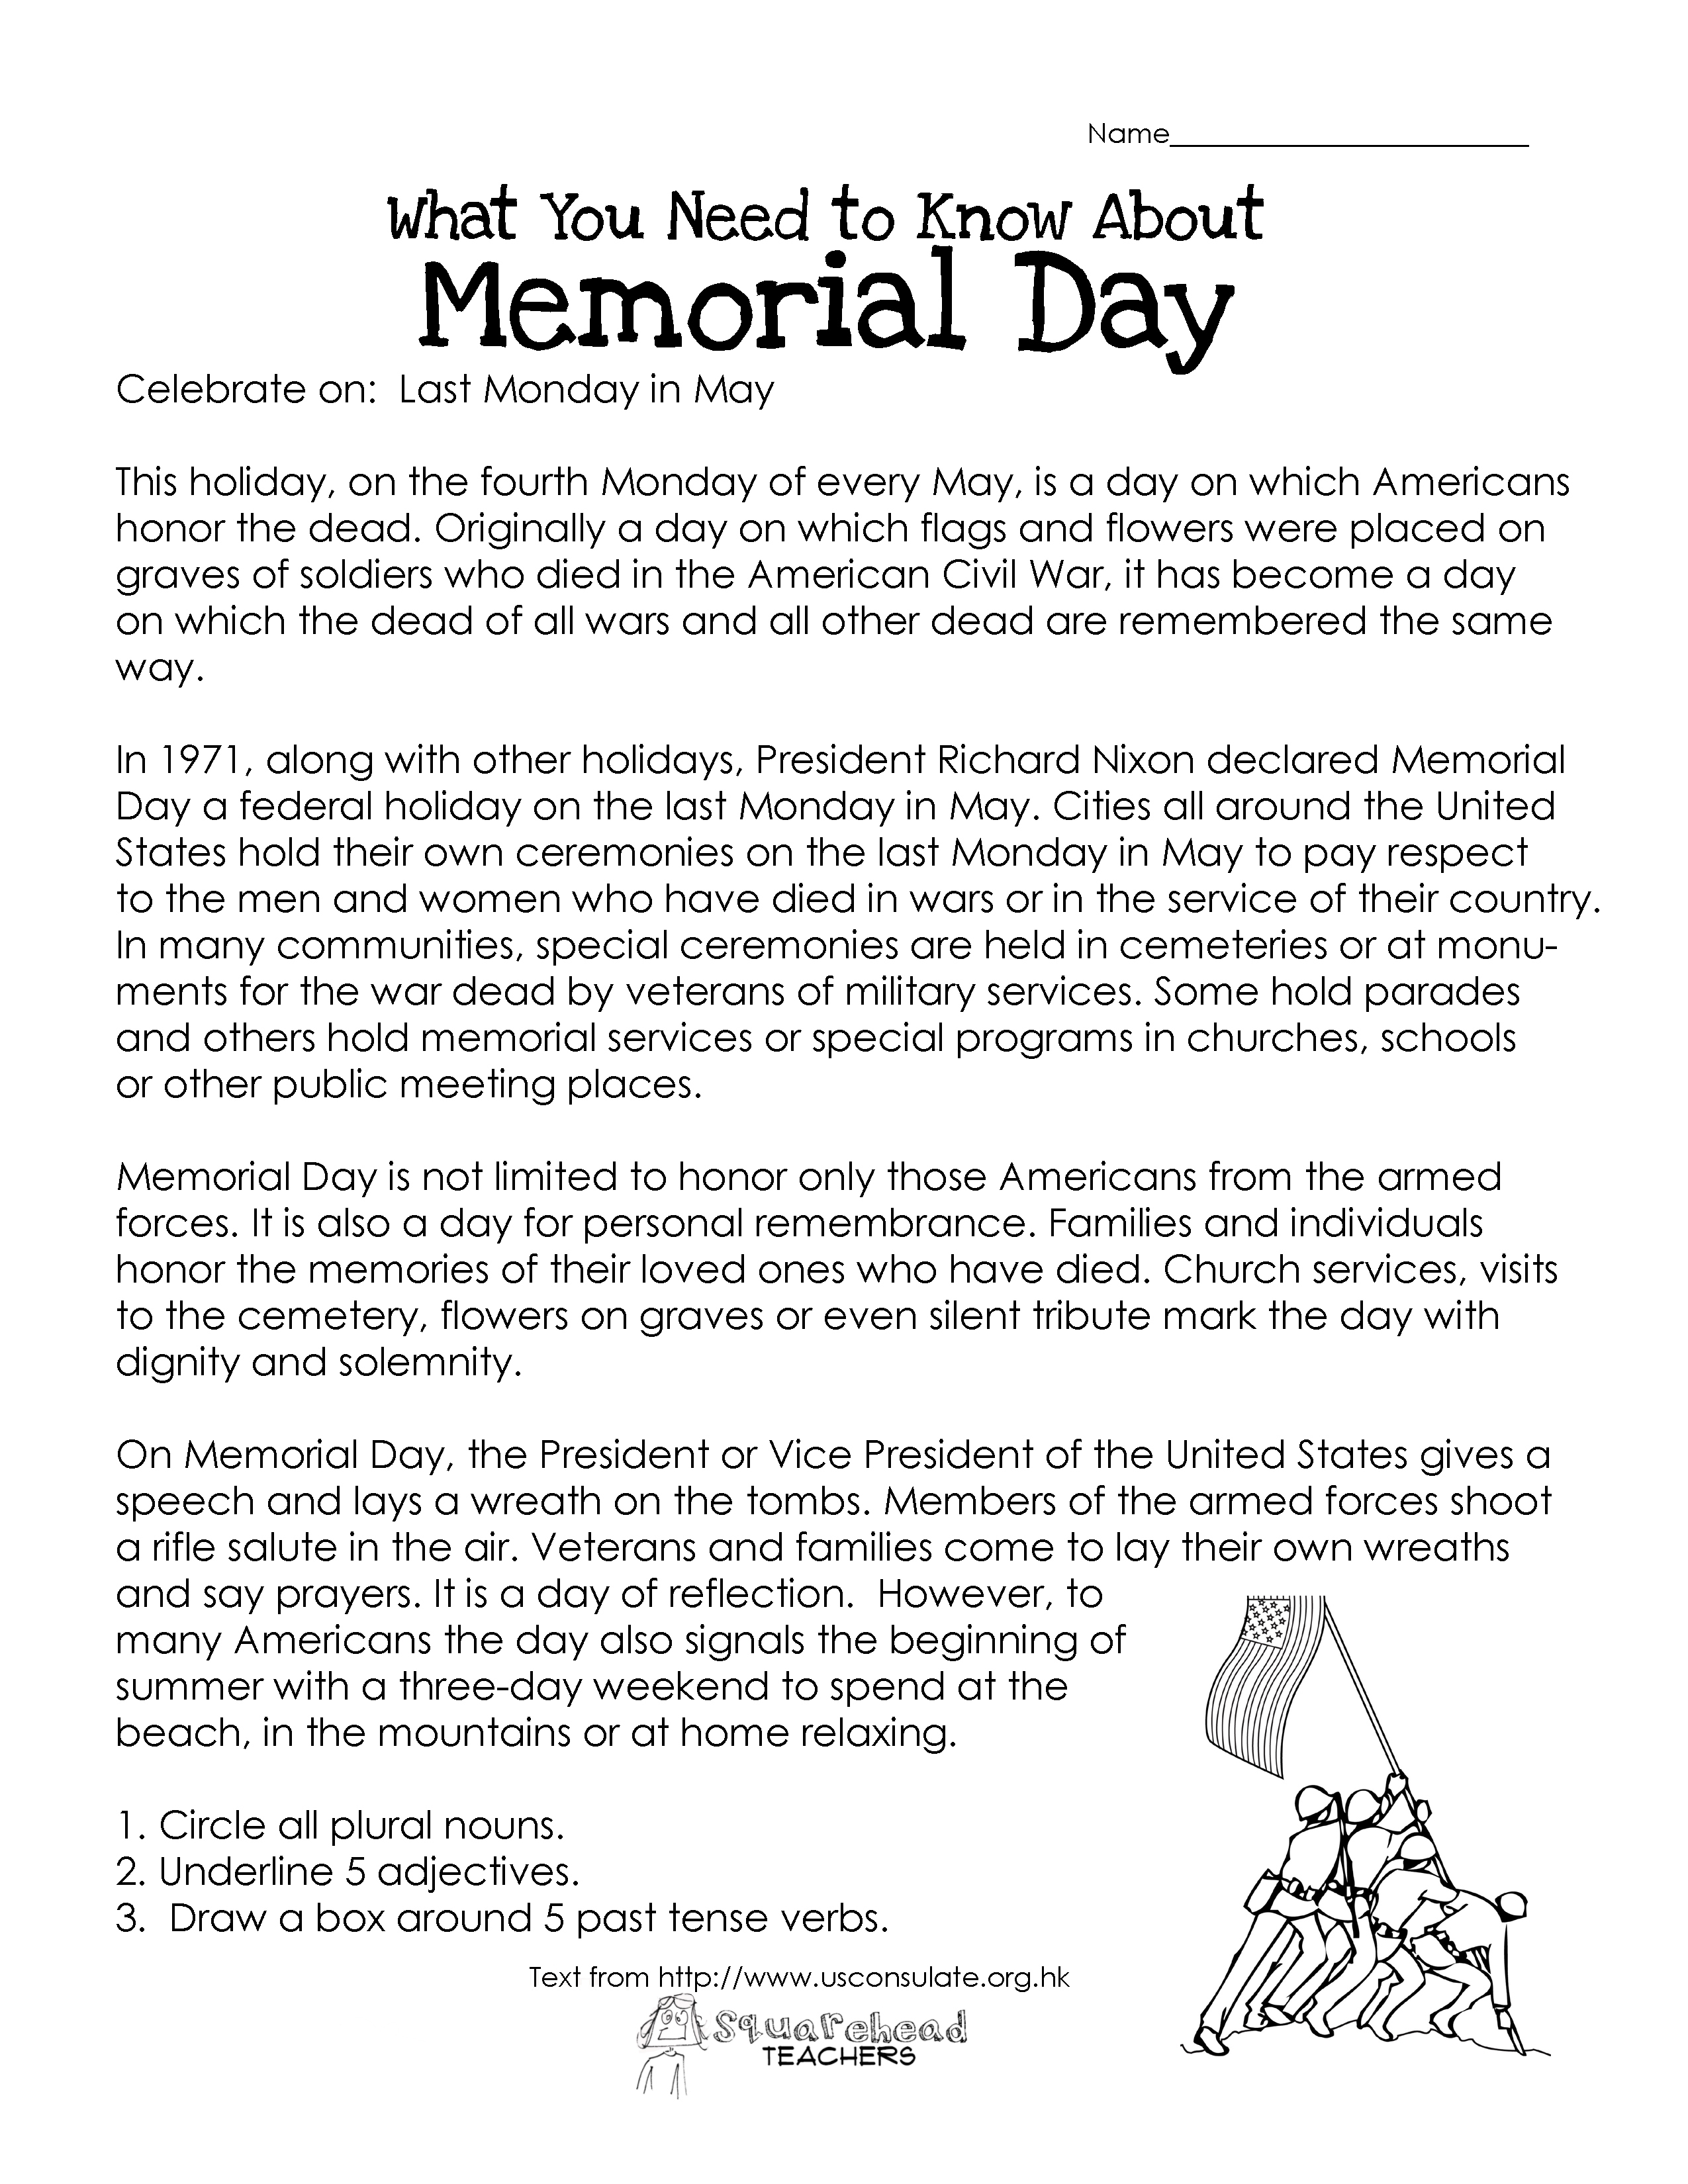 Memorial Day (Free Worksheet) | Squarehead Teachers | Free Printable Labor Day Worksheets